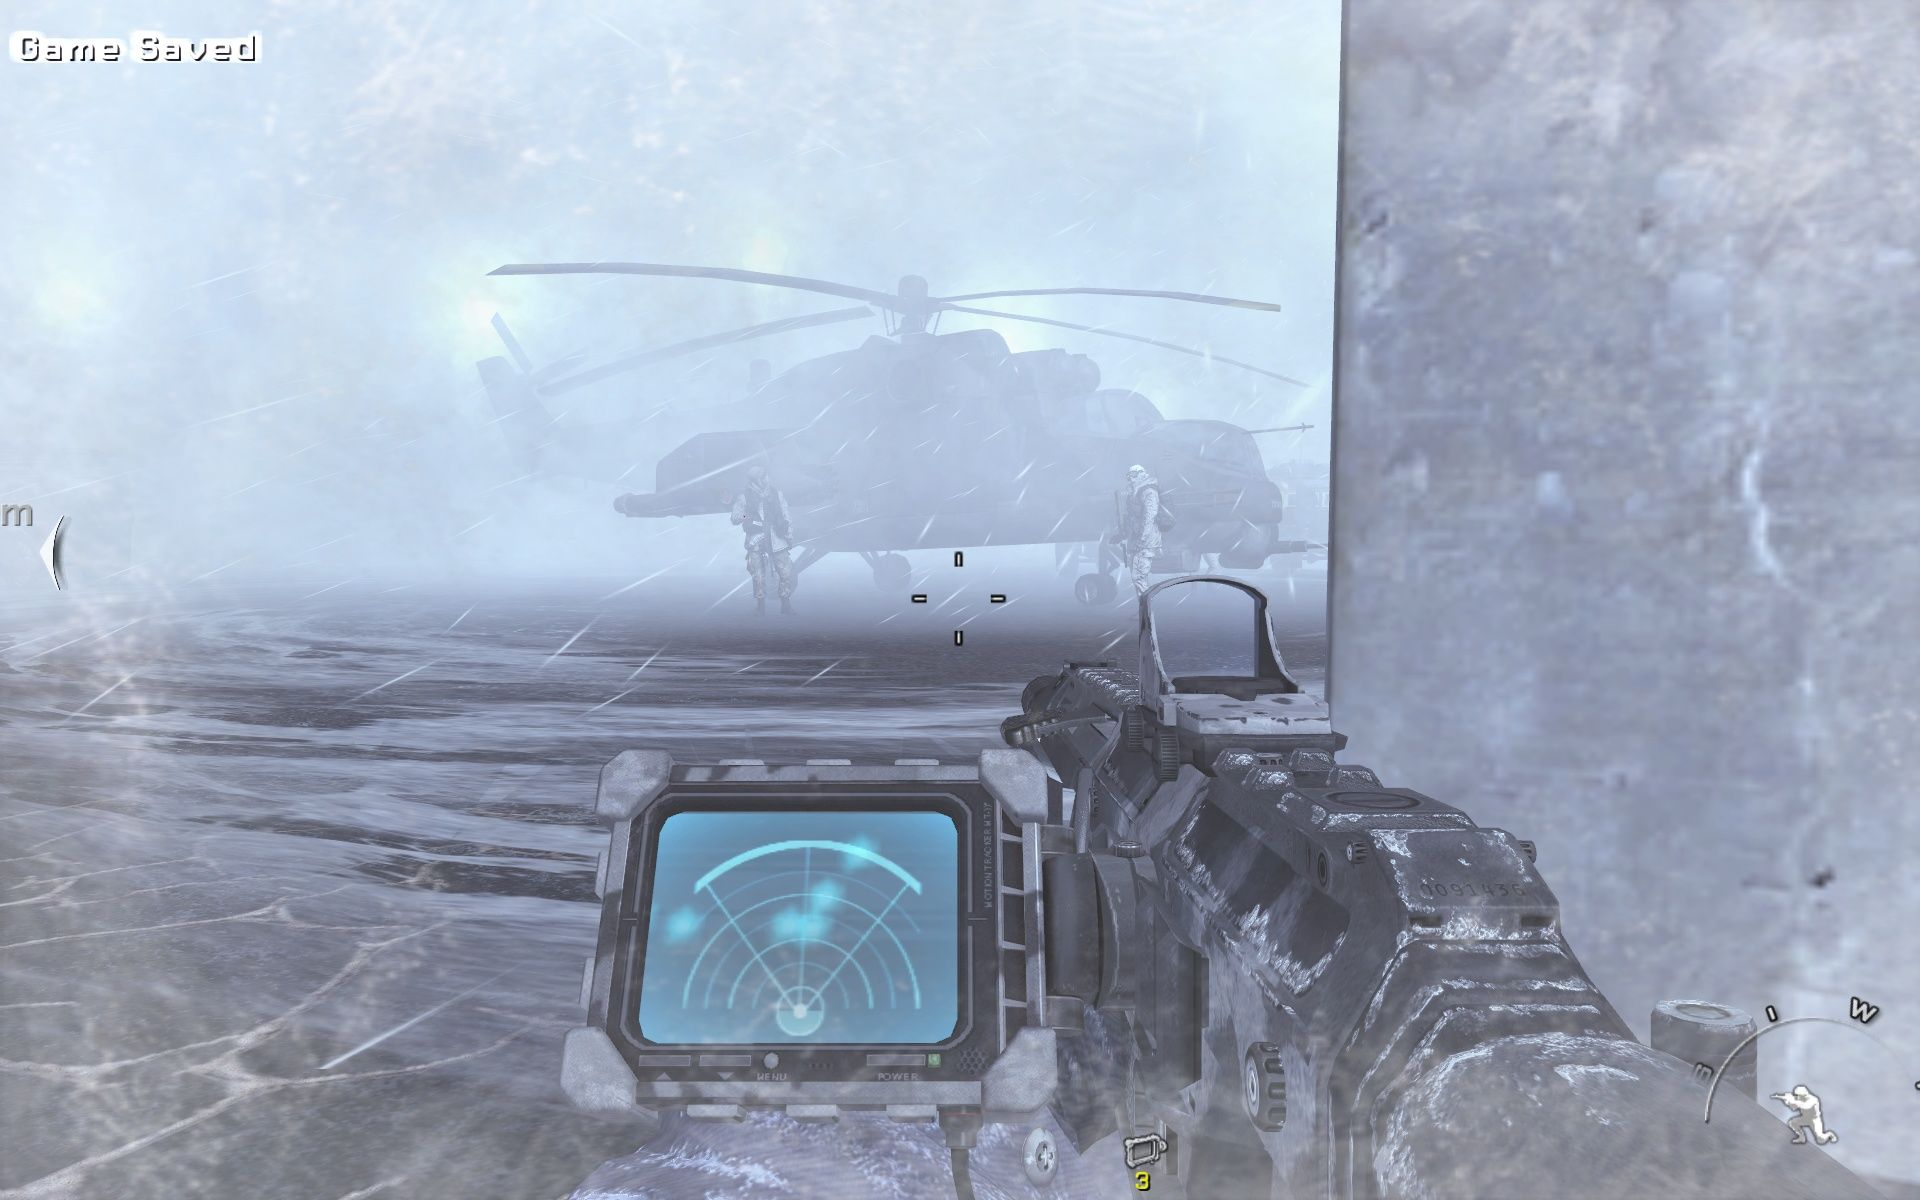 Call of Duty: Modern Warfare 2 Windows The snowstorm keeps me from being spotted.